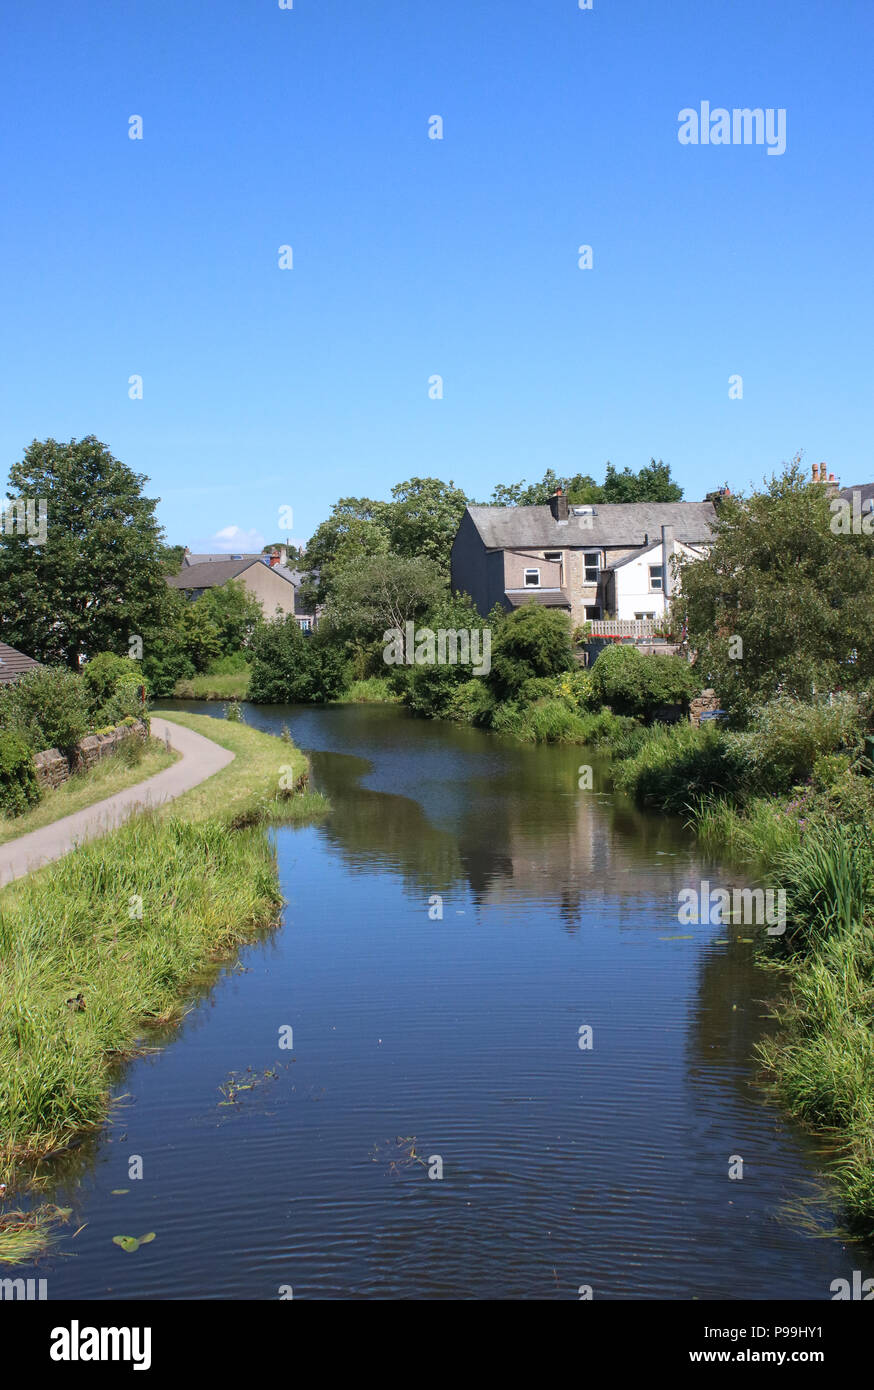 View along the Lancaster canal and towpath from Shaw Street bridge in the Freehold area of Lancaster, Lancashire, England. - Stock Image